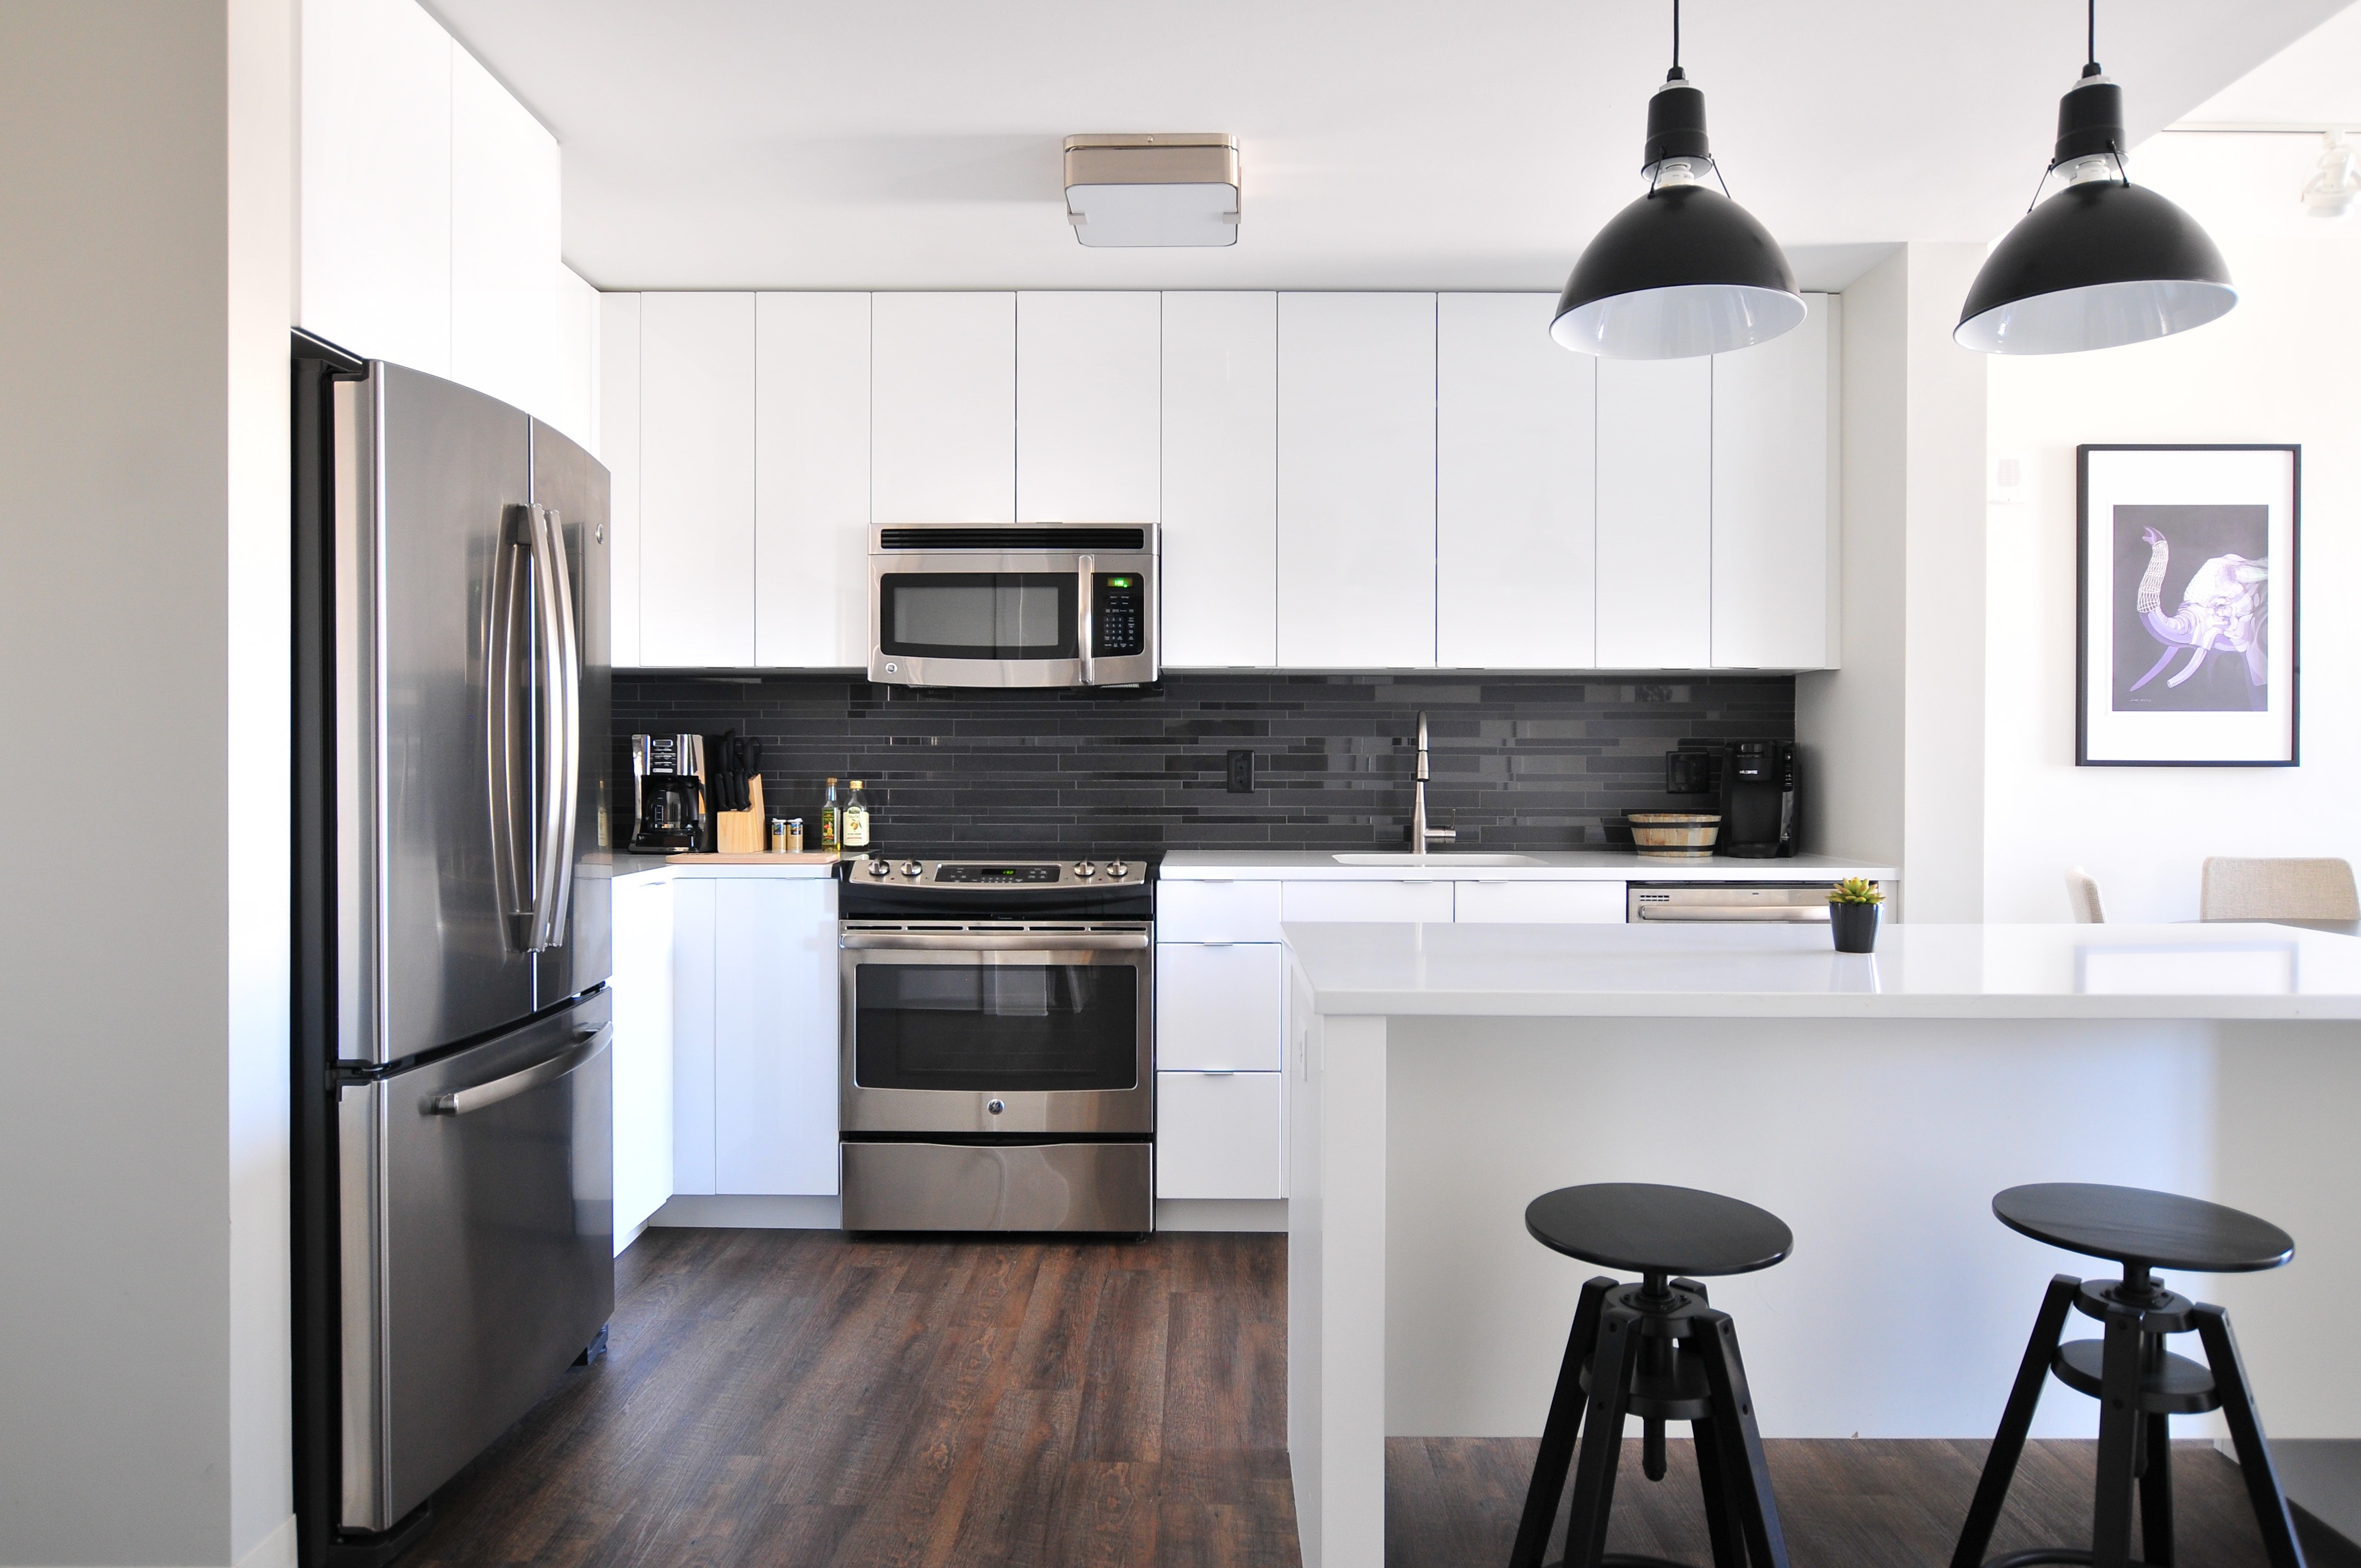 Kitchen Update with electrical needs